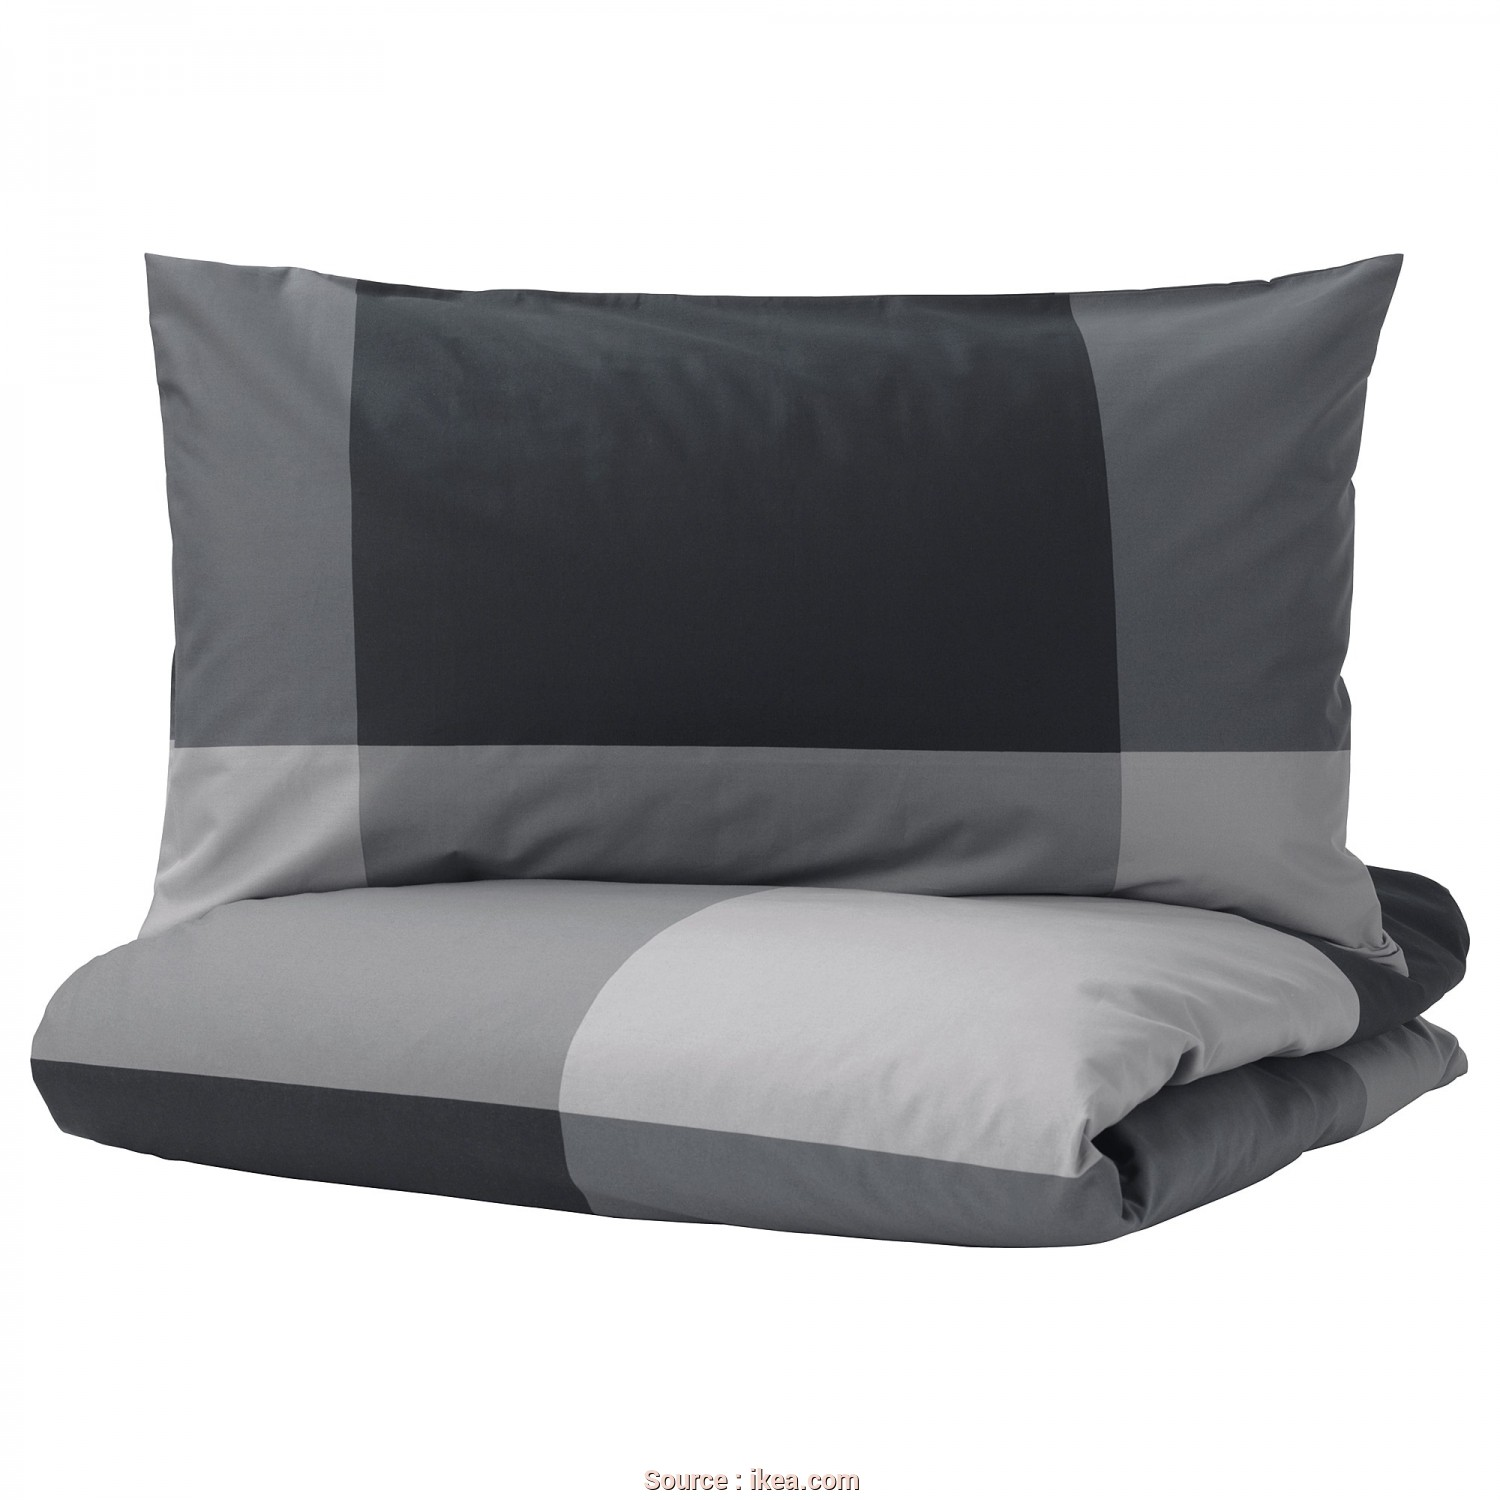 Can, Wash Ikea Futon Cover, Affascinante Inter IKEA Systems B.V. 1999, 2018, Privacy Policy, Responsible Disclosure